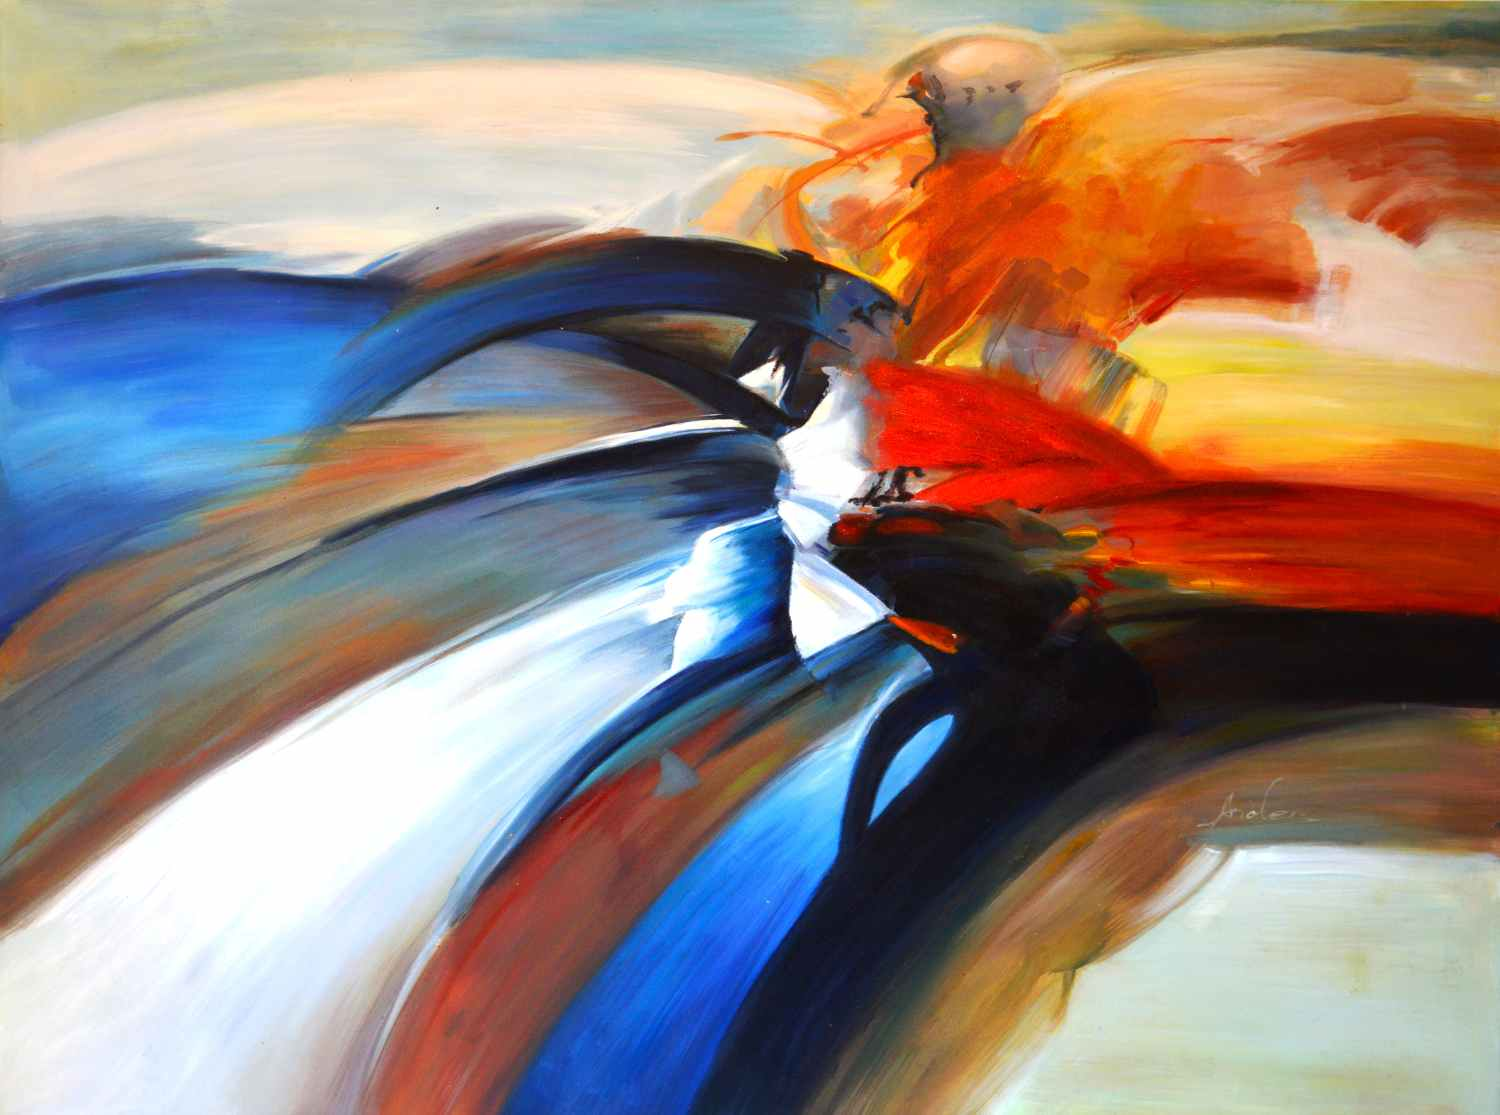 Abstraction Wasserfall von Long120 x 90cm